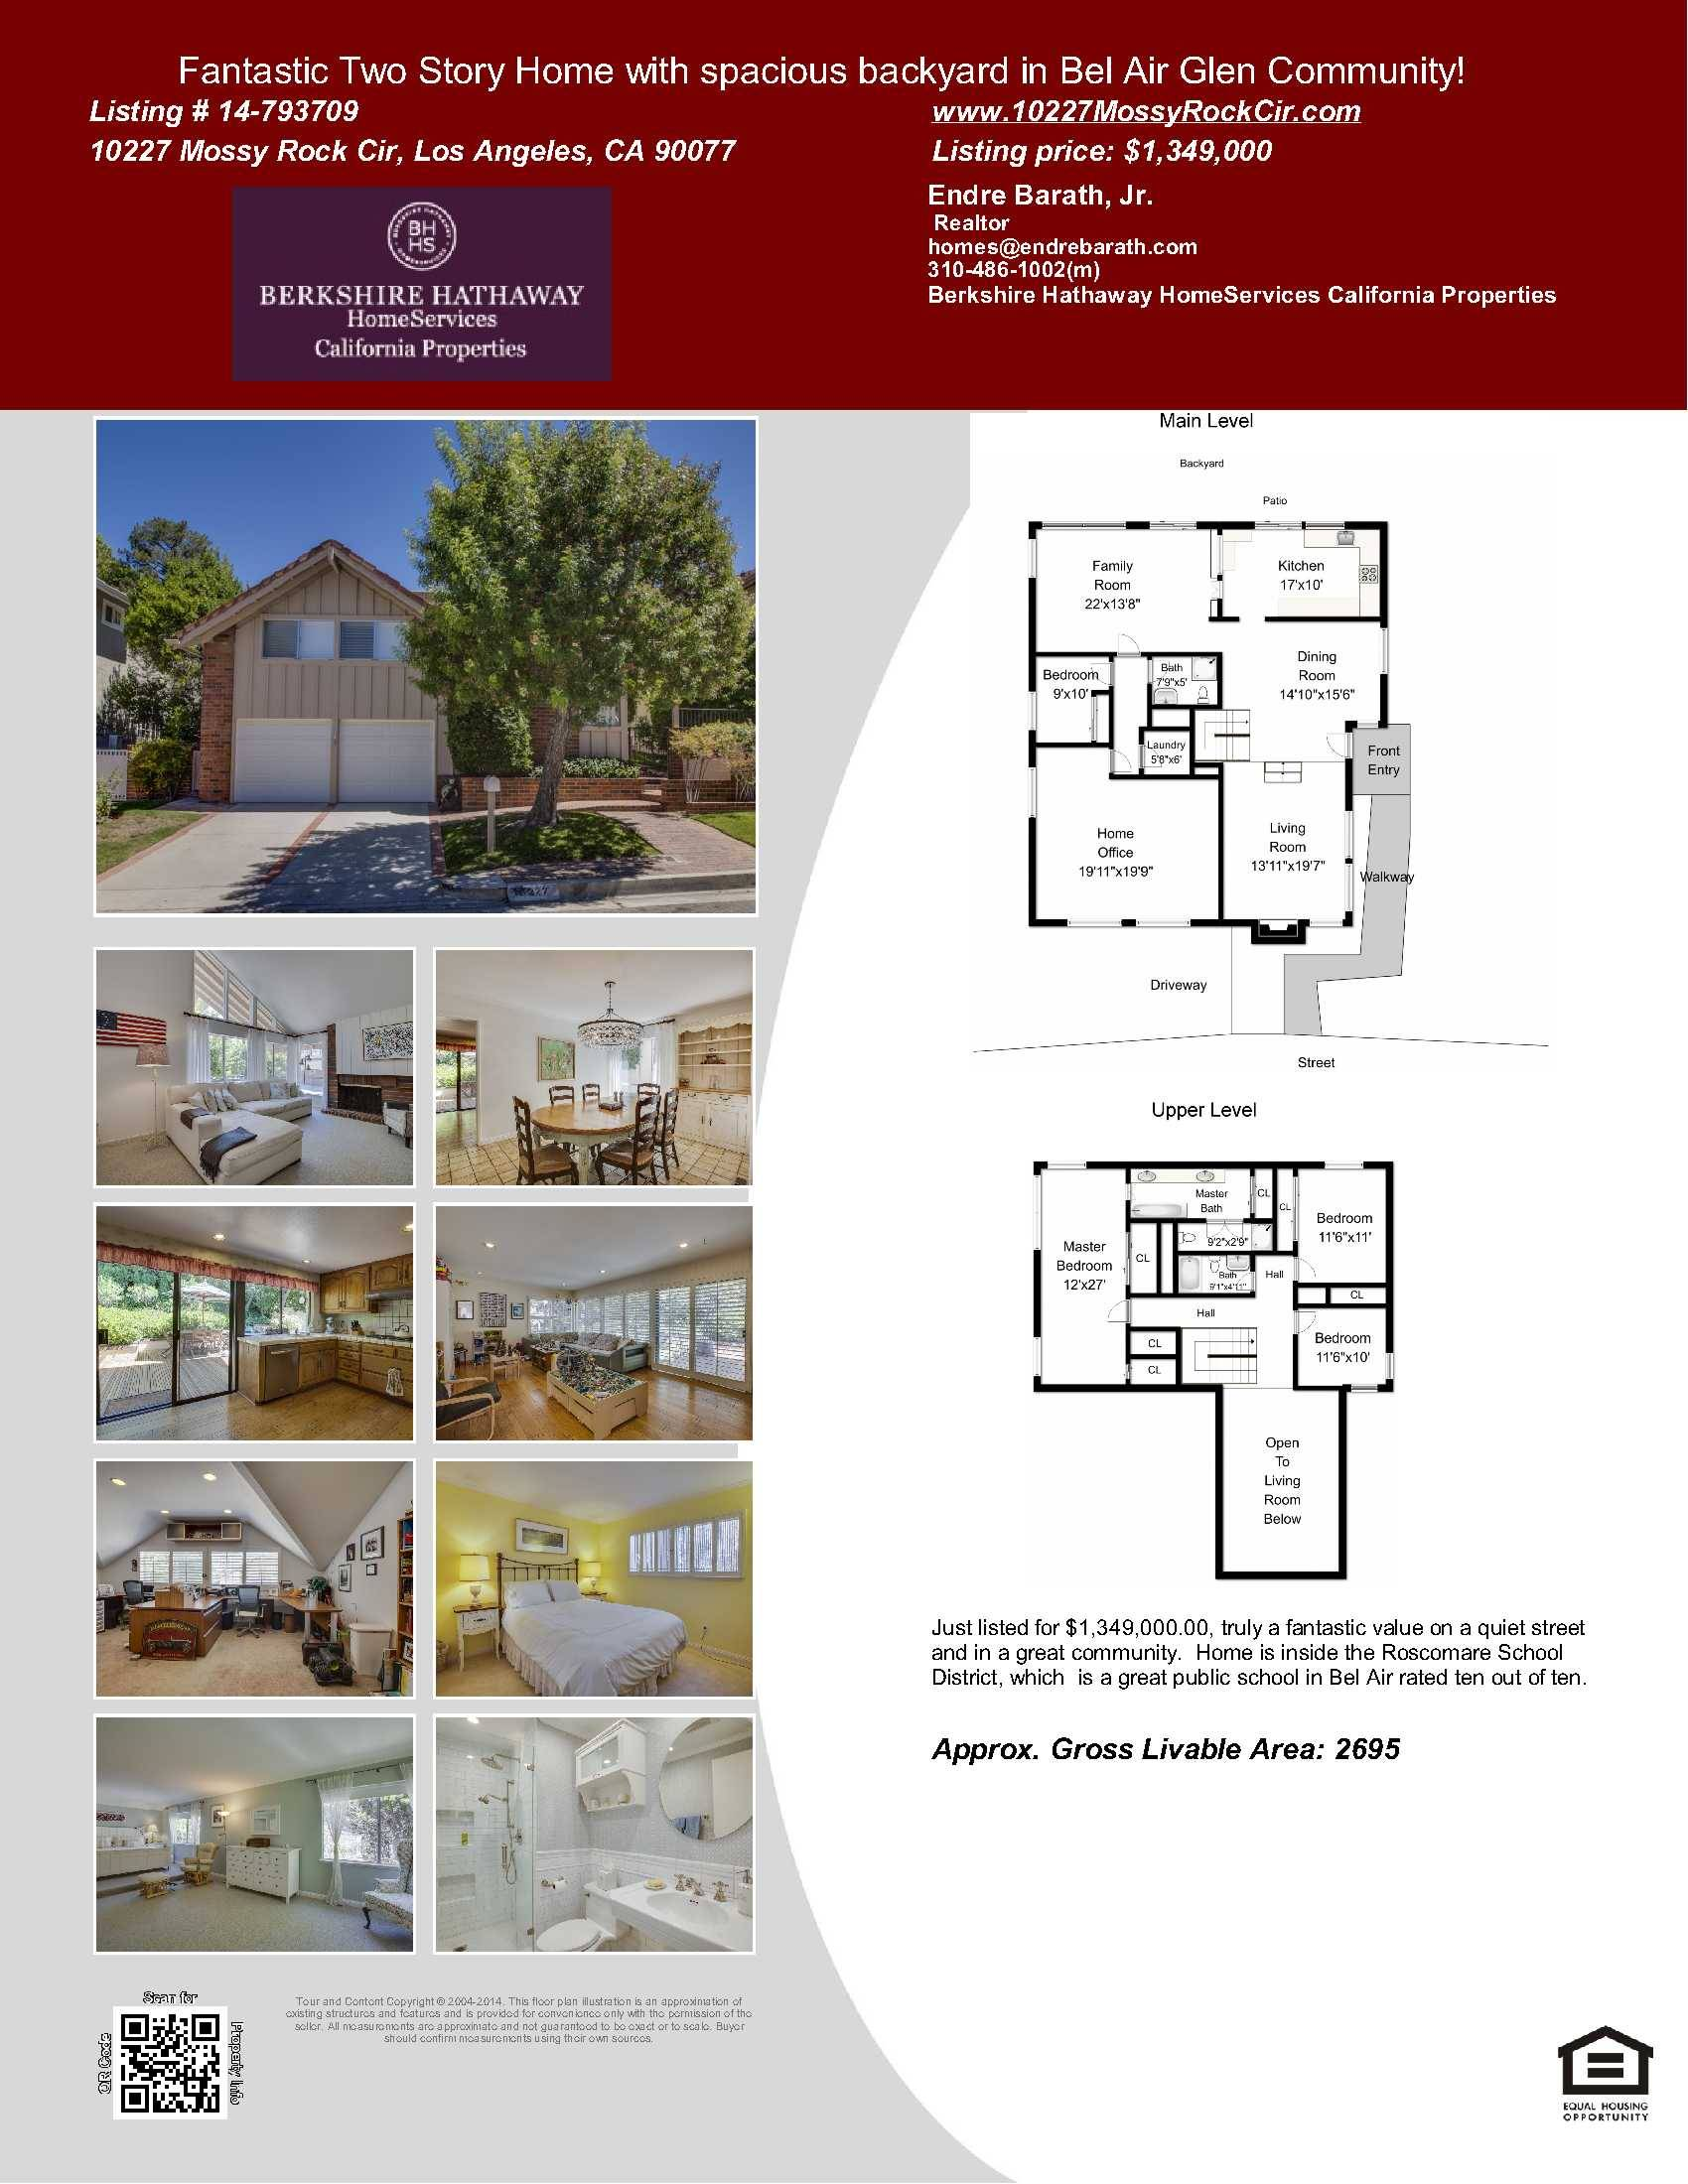 Just Listed Fantastic Two Story Home in 90077 Zip Code Bel Air Glen Endr